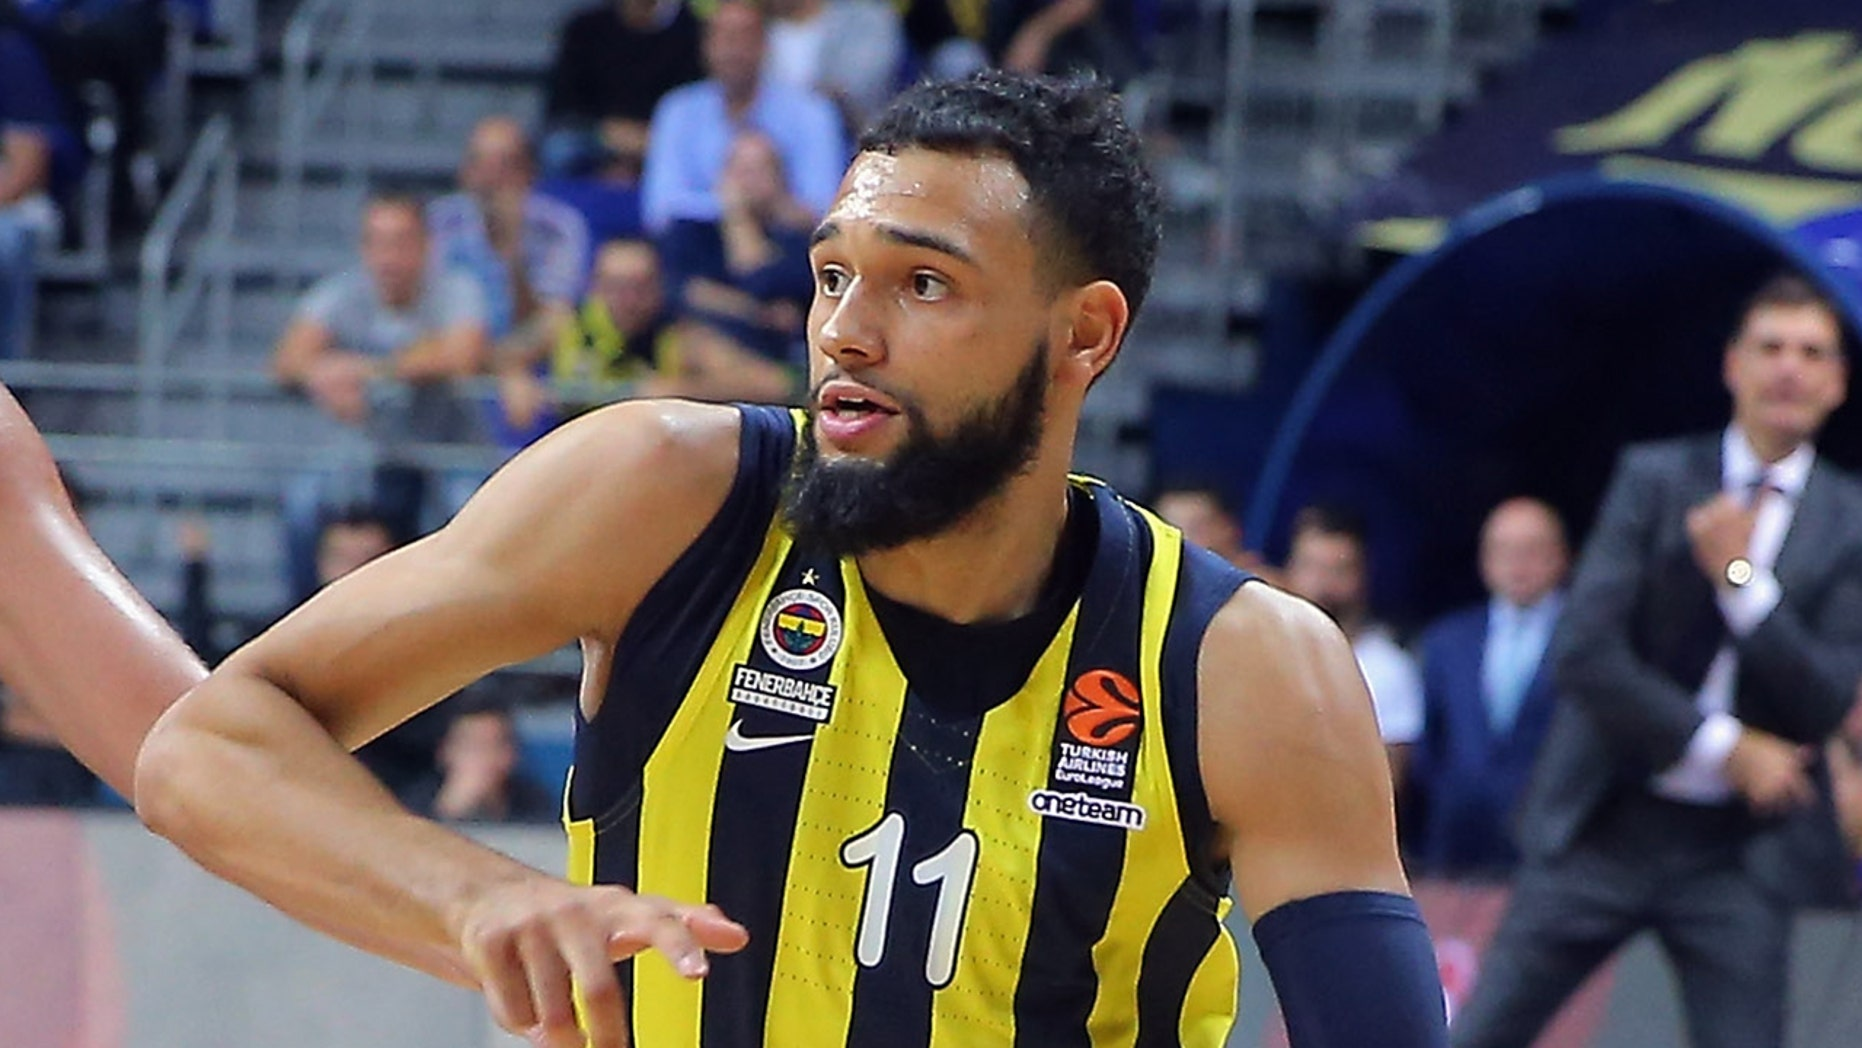 Tyler Ennis, #11 of Fenerbahce Istanbul in action with Alexey Shved, #1 of Khimki Moscow during the 2018/2019 Turkish Airlines EuroLeague.